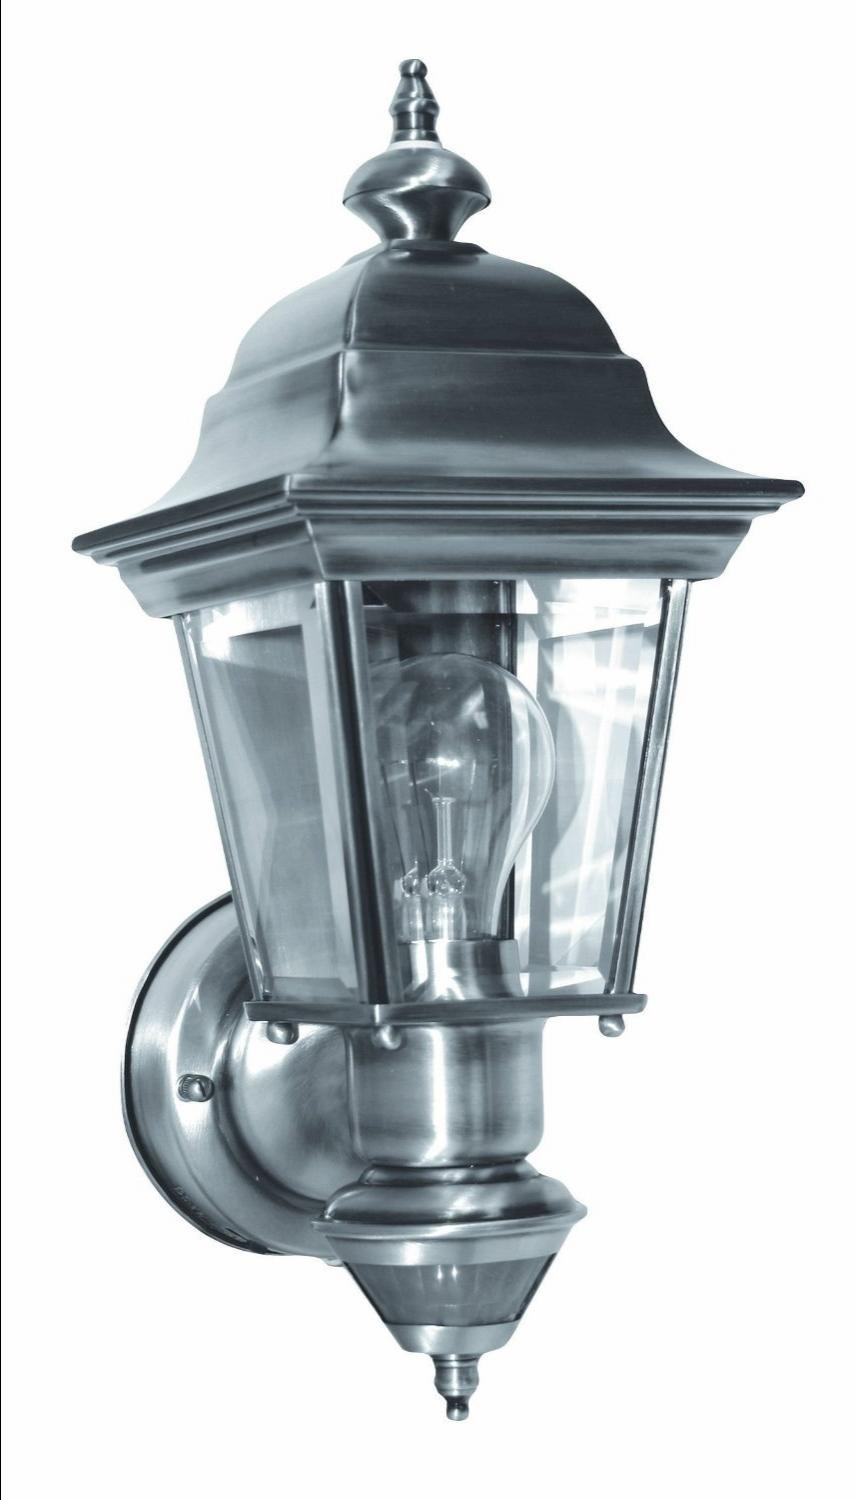 Motion Activated Porch Light Model SL-4155-AB